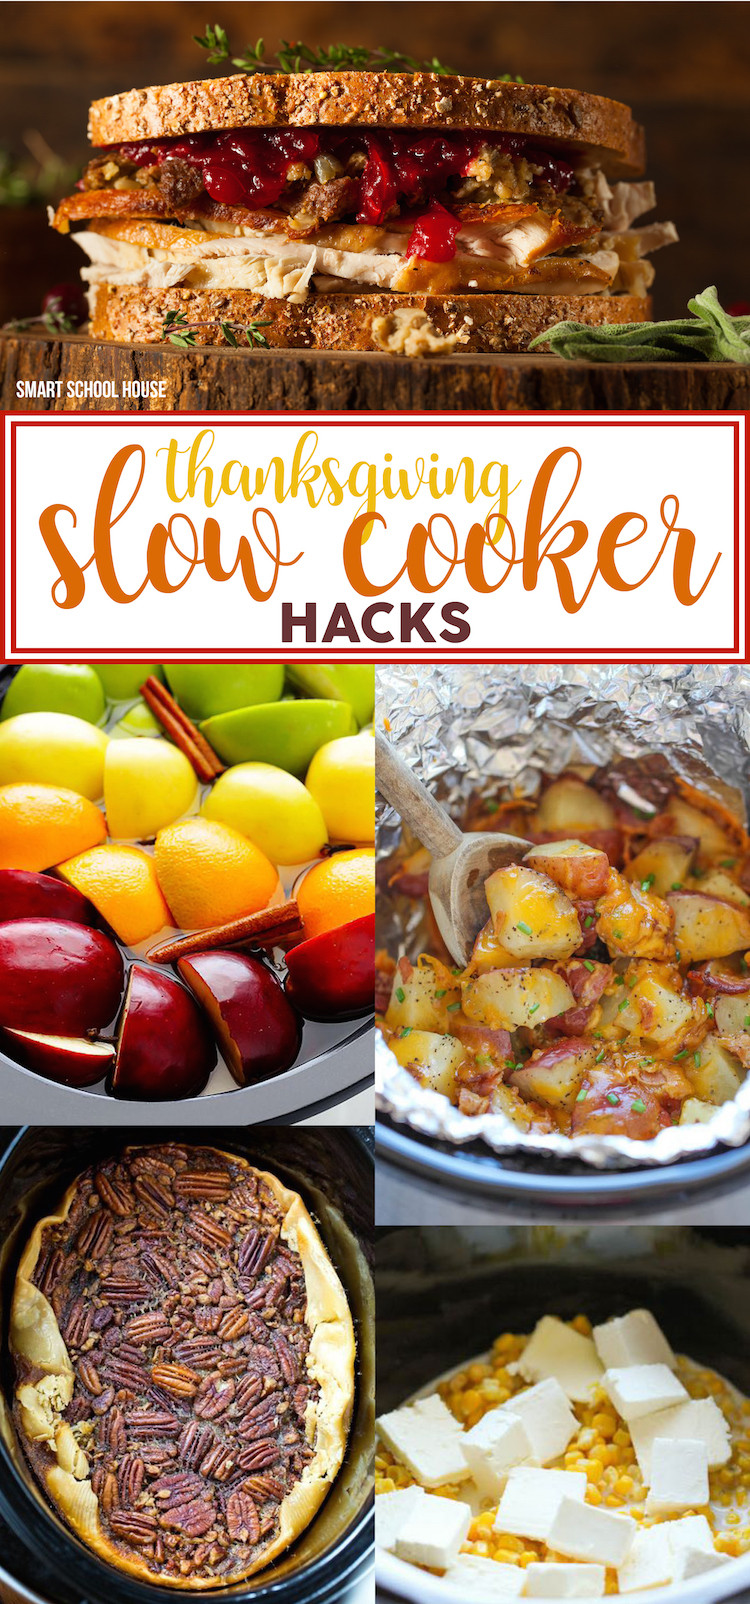 The Kitchen Thanksgiving Recipes  Thanksgiving Slow Cooker Hacks Smart School House